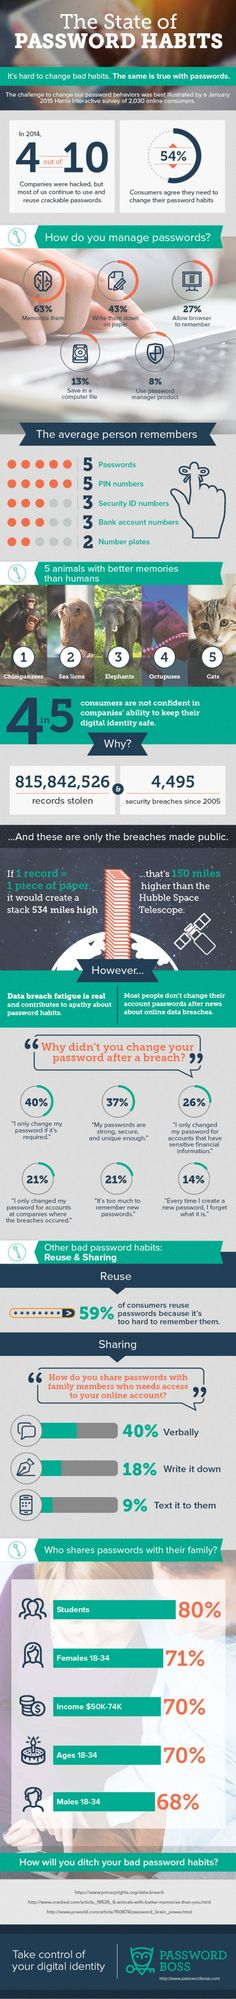 The State of Passowrd Habits #infografía